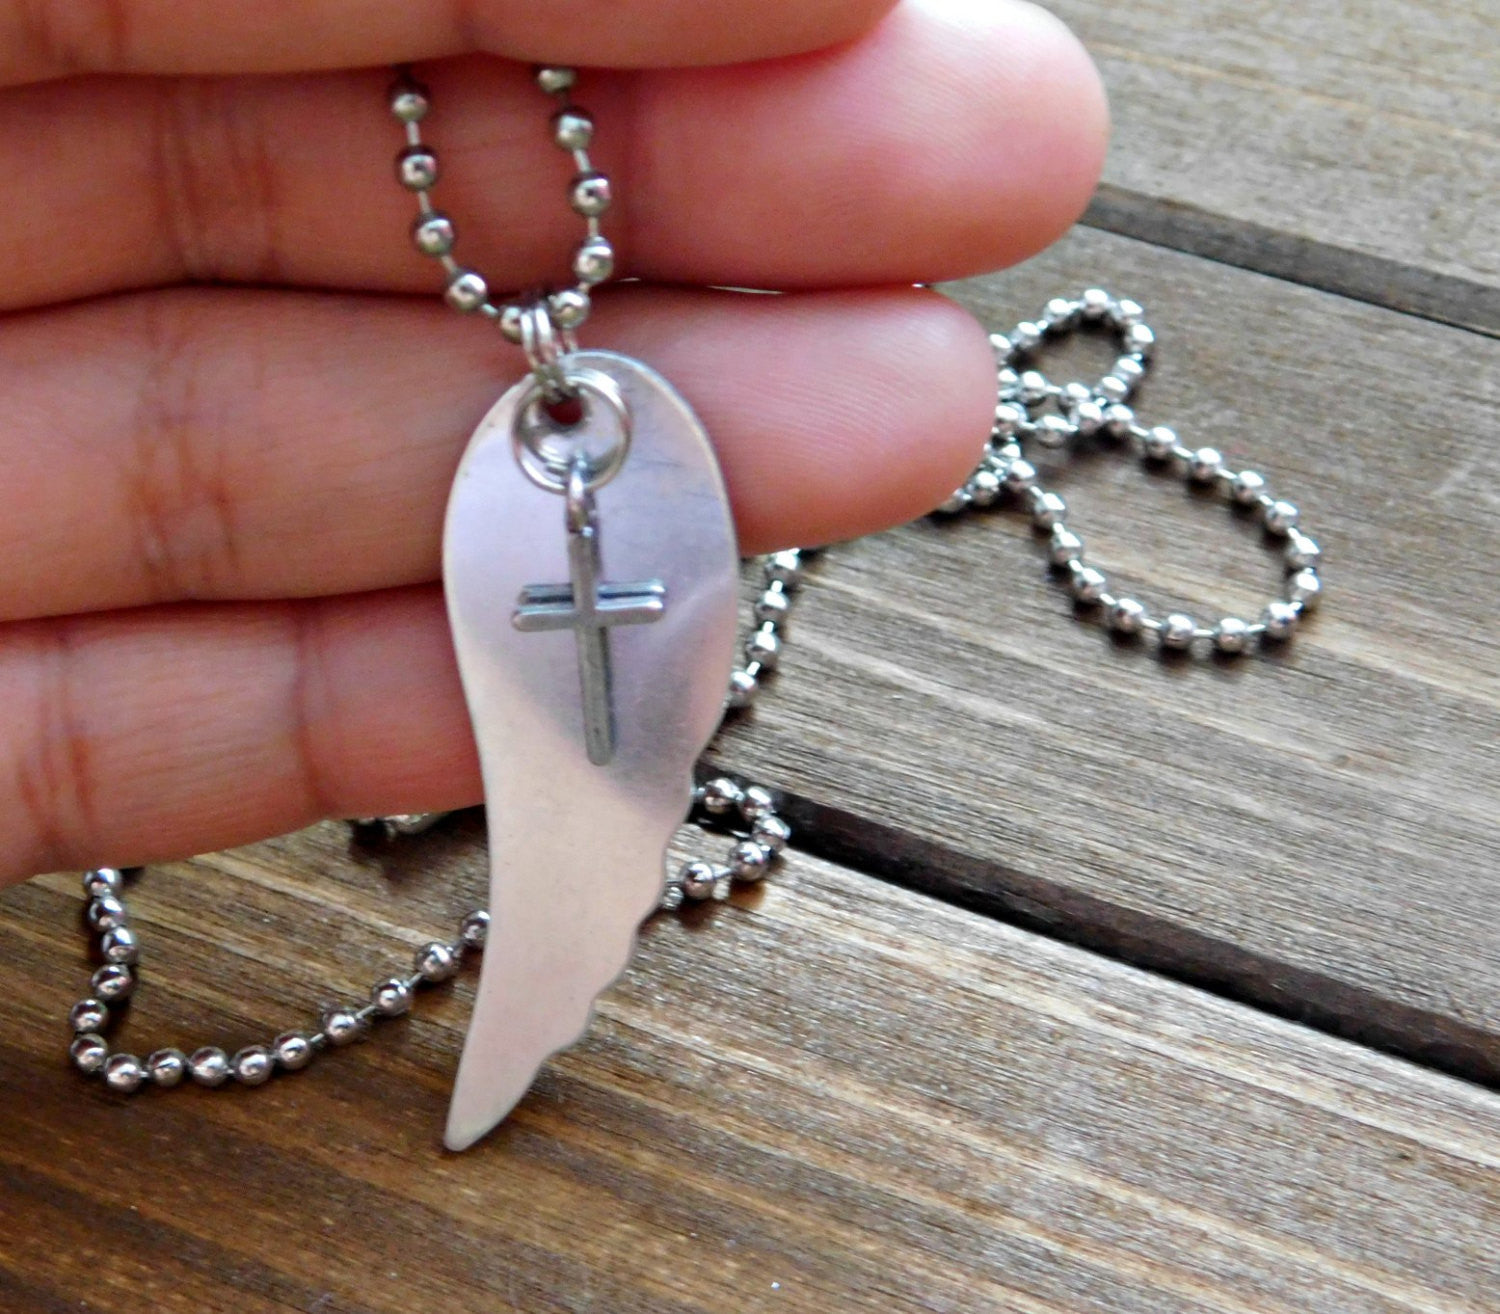 Wing Necklace Charm Necklace Angel Wing Necklace Cross Necklace Cross Pendant Christian Necklace Christian Charm Necklace Long Necklace Gift